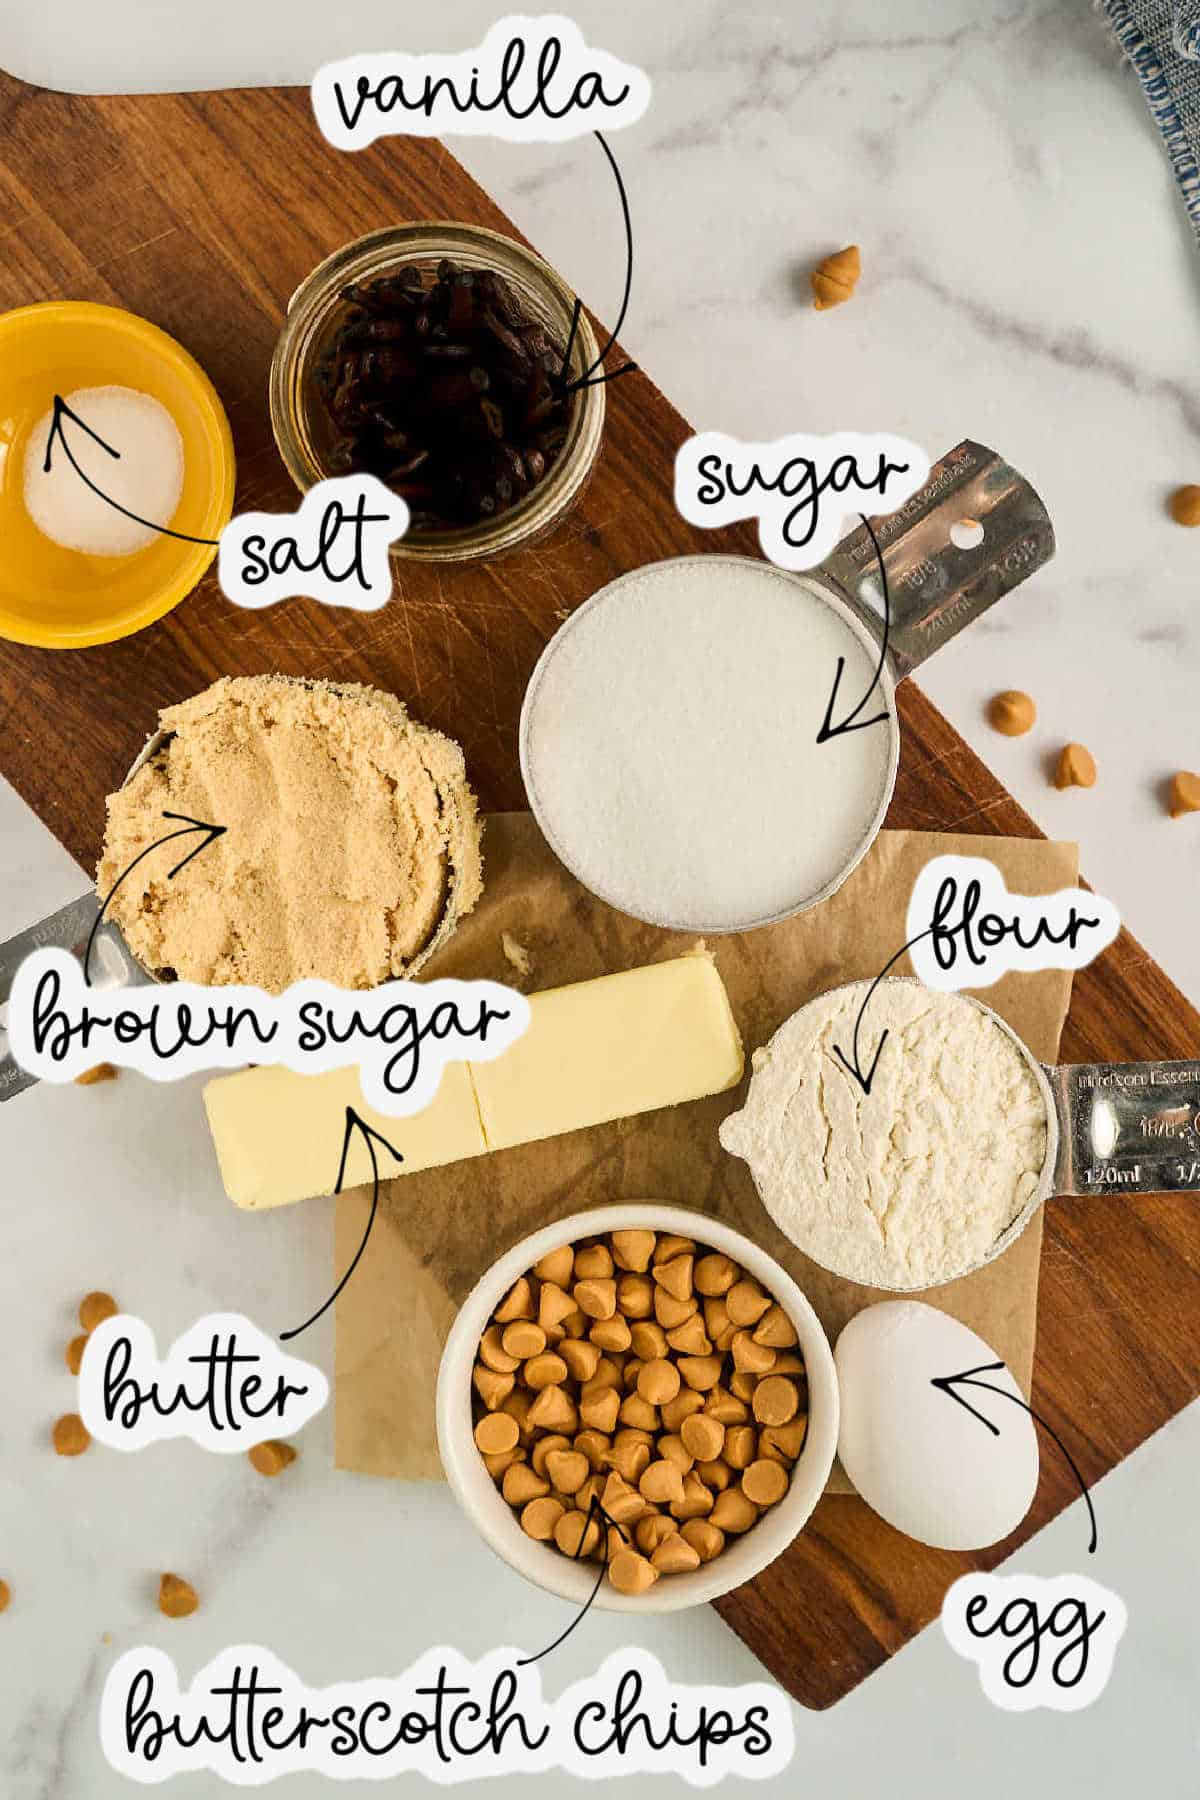 sugar, flour, brown sugar, sugar, and butterscotch chips on marble counter